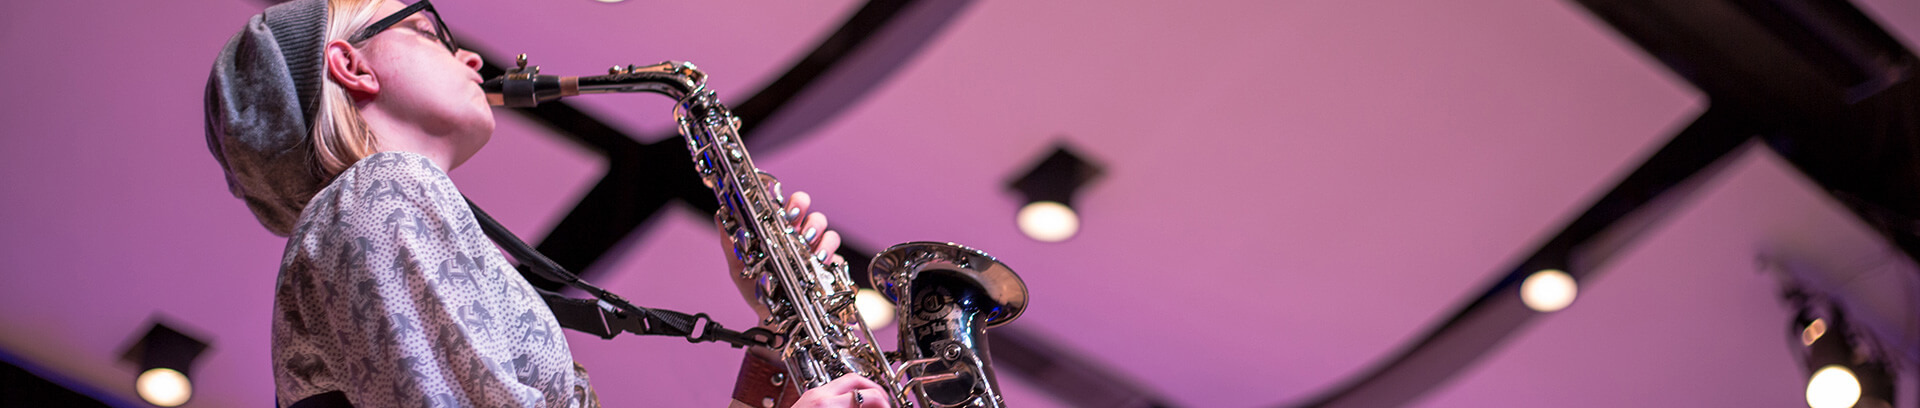 a band student wearing a Sax Practice Harness while playing alto saxophone